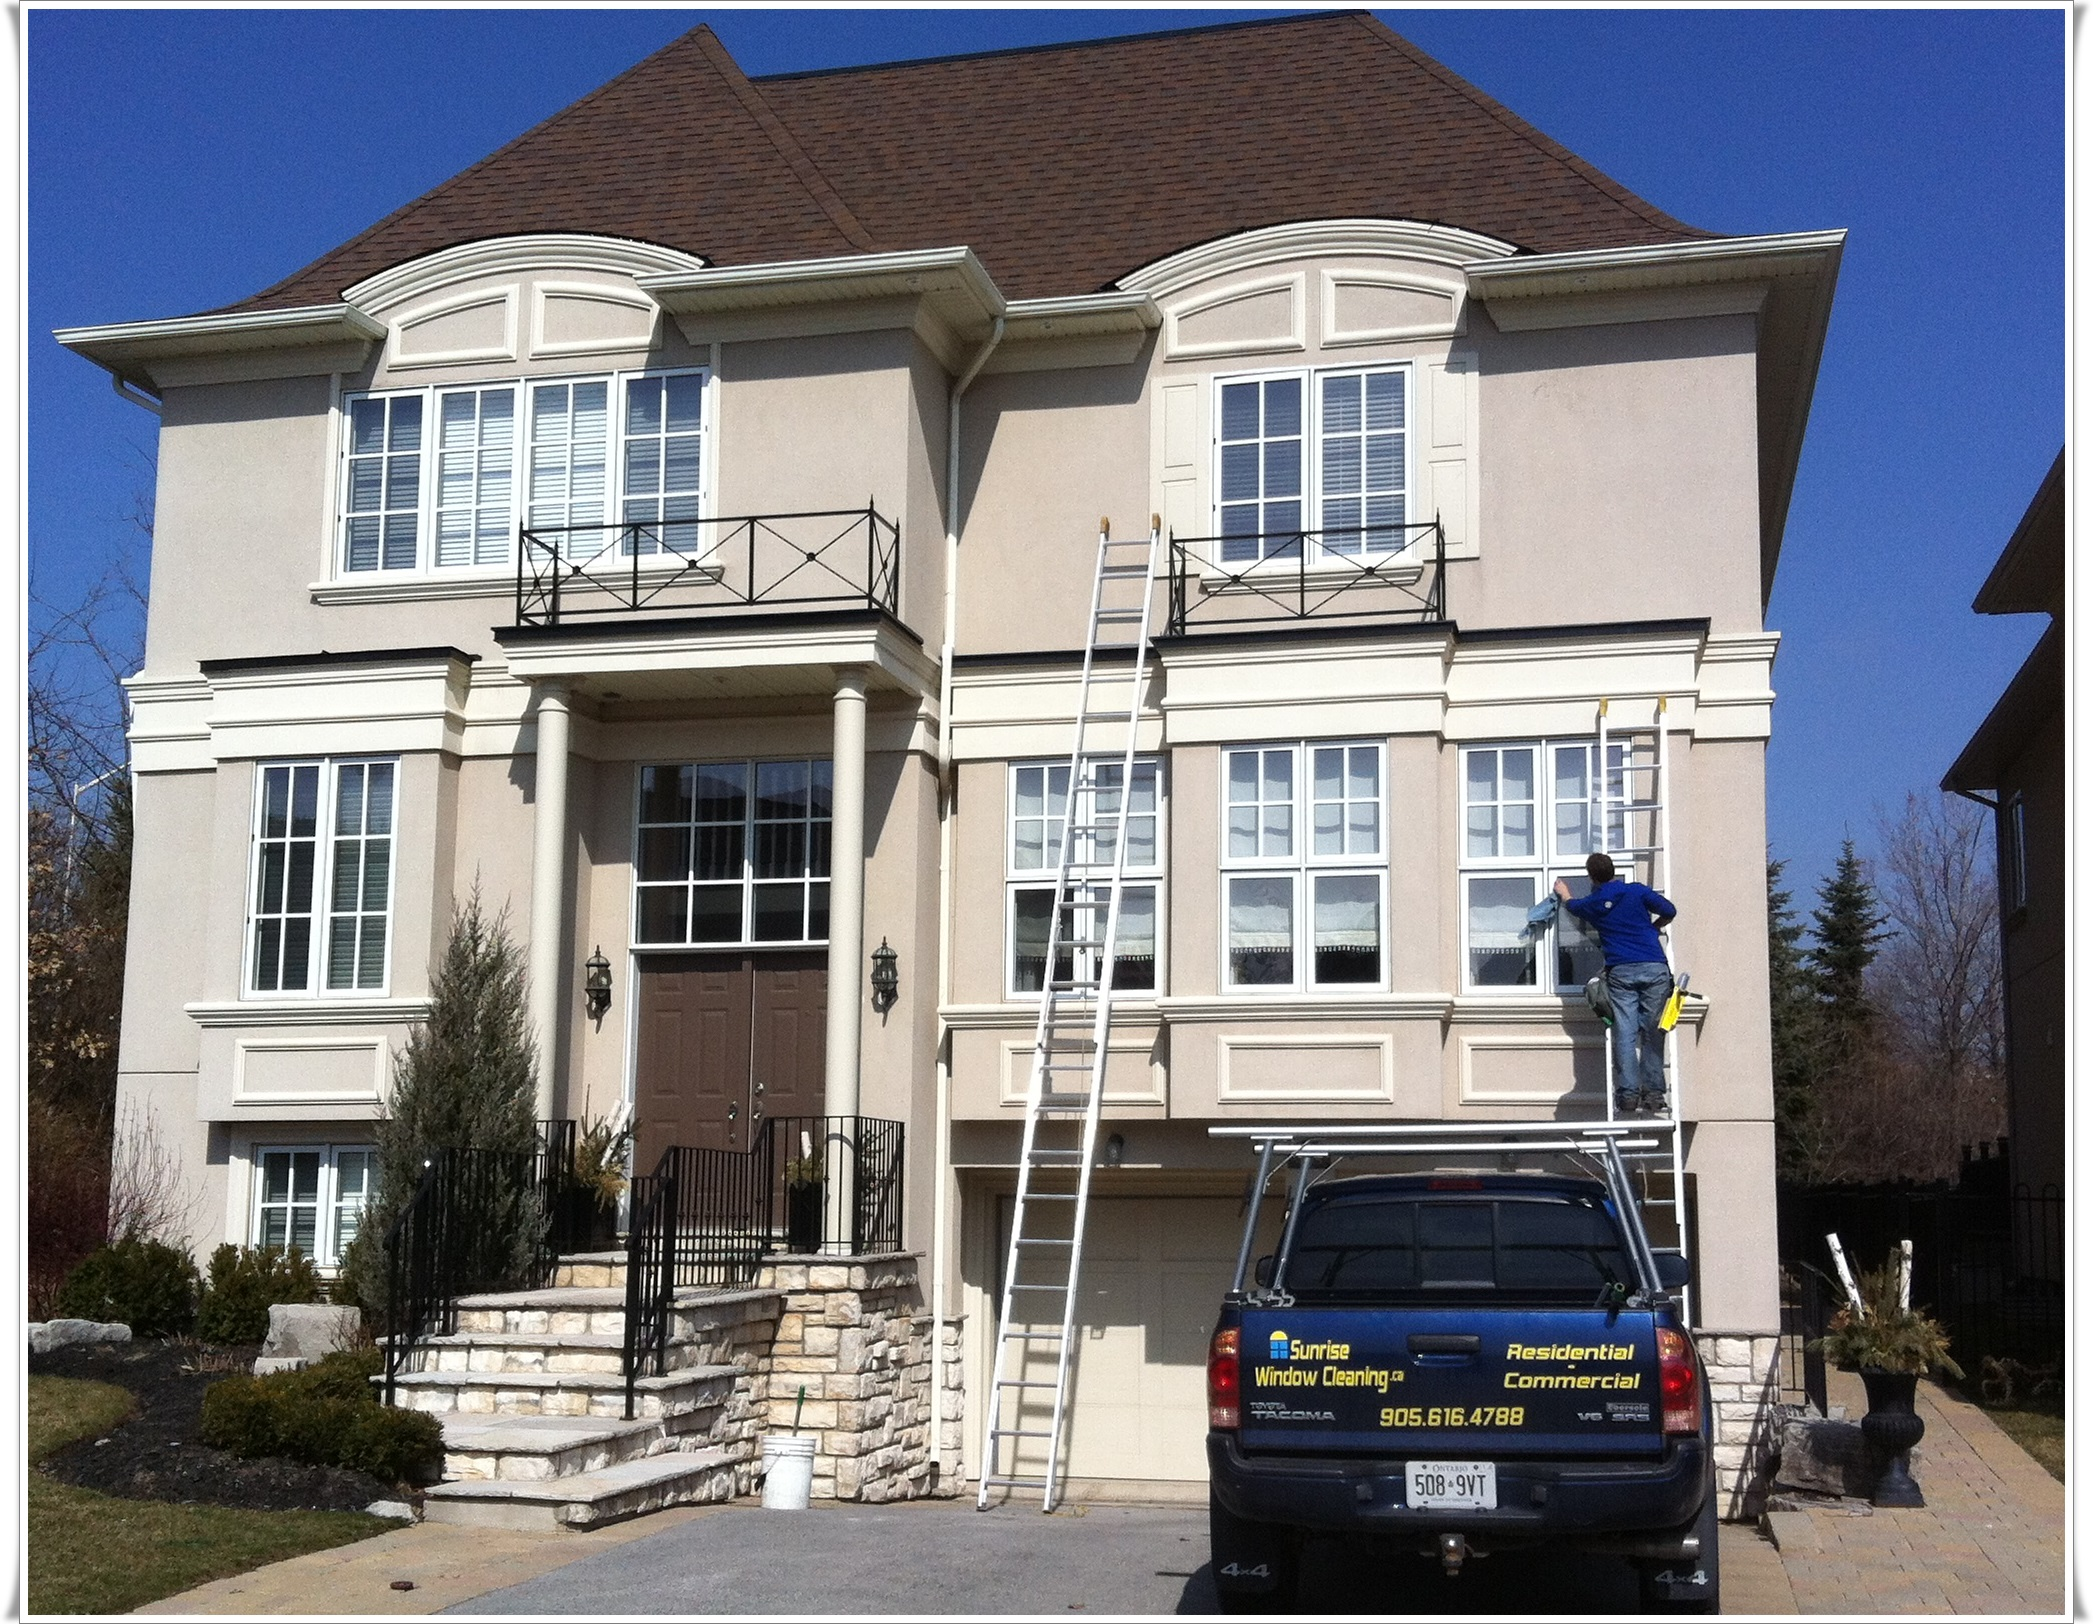 Residential window cleaning window cleaning mississauga for Windows for residential homes